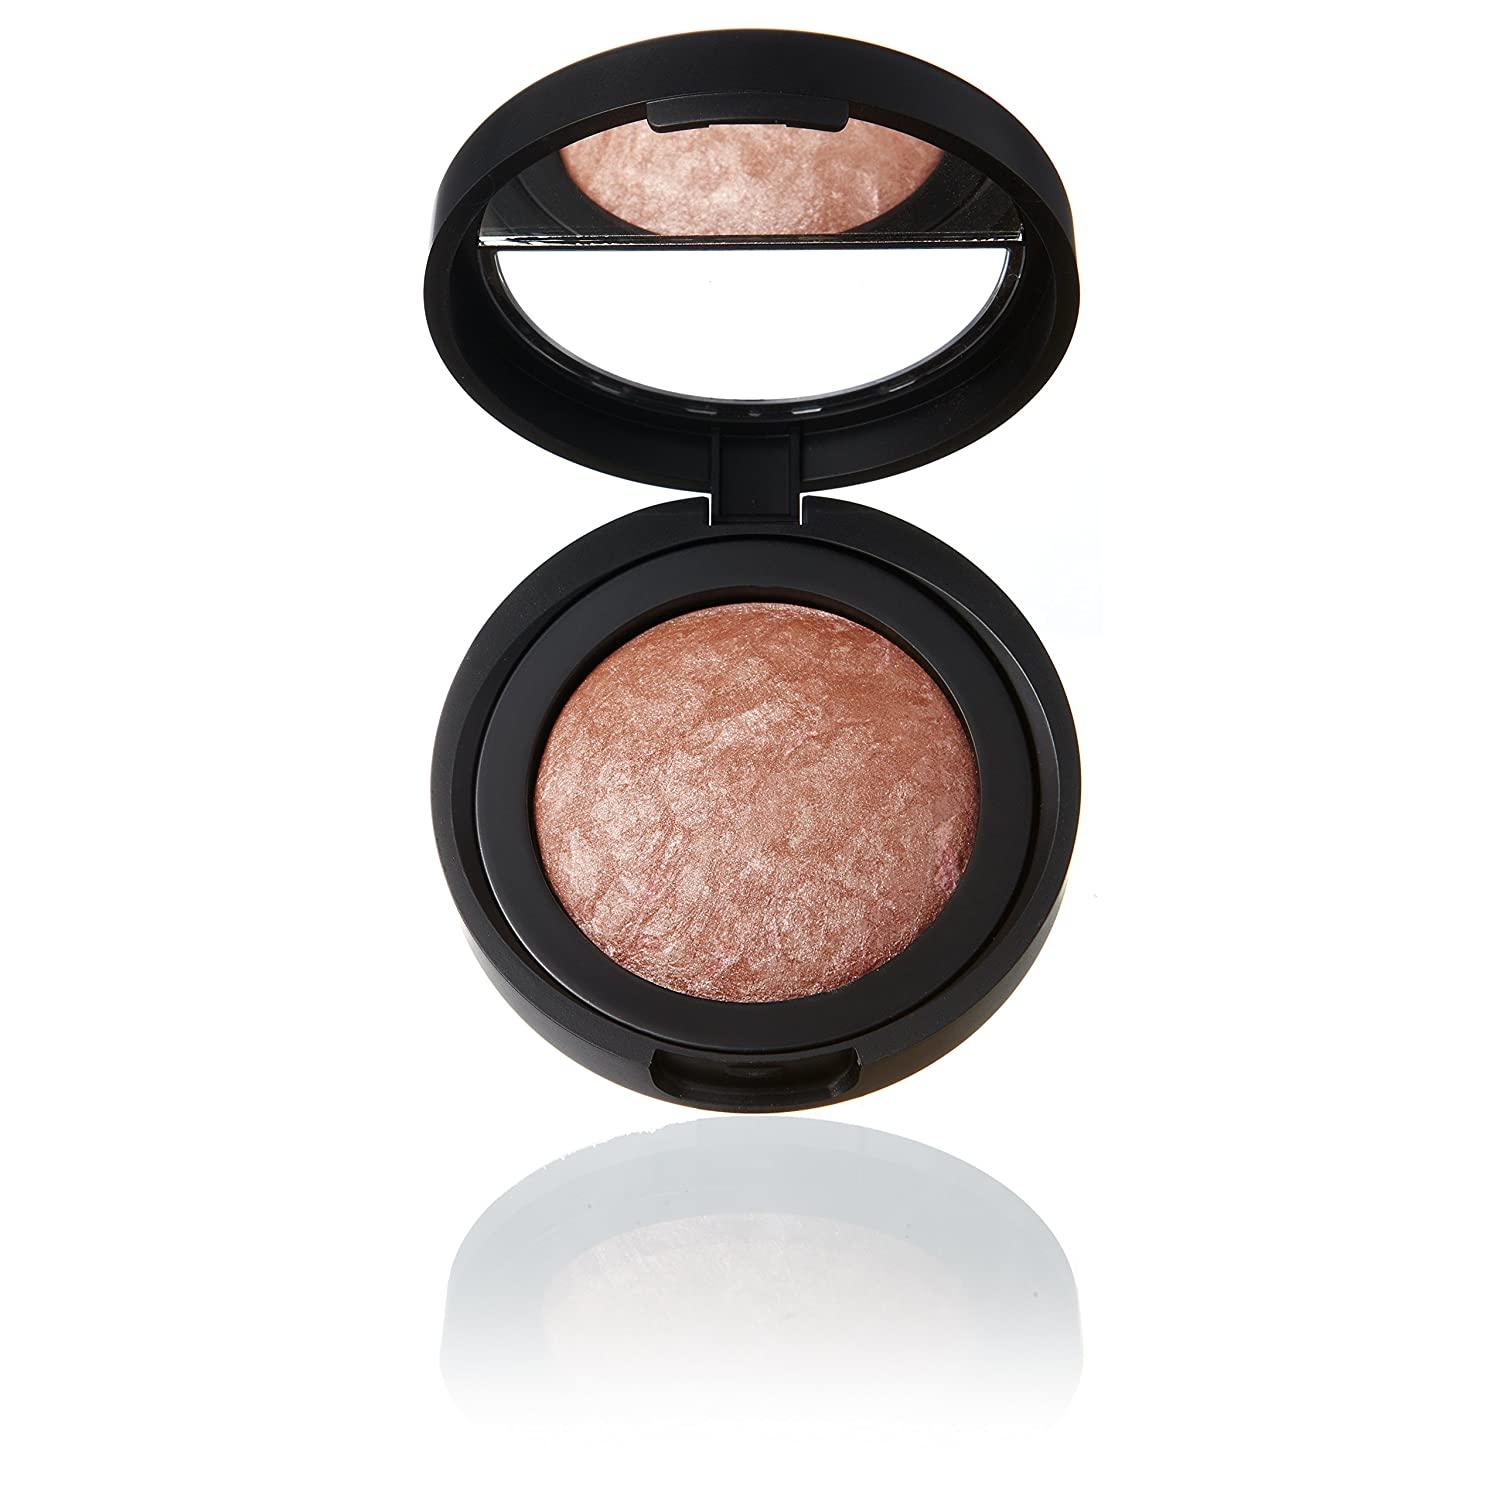 Laura Geller Beauty Baked Blush-N-Brighten